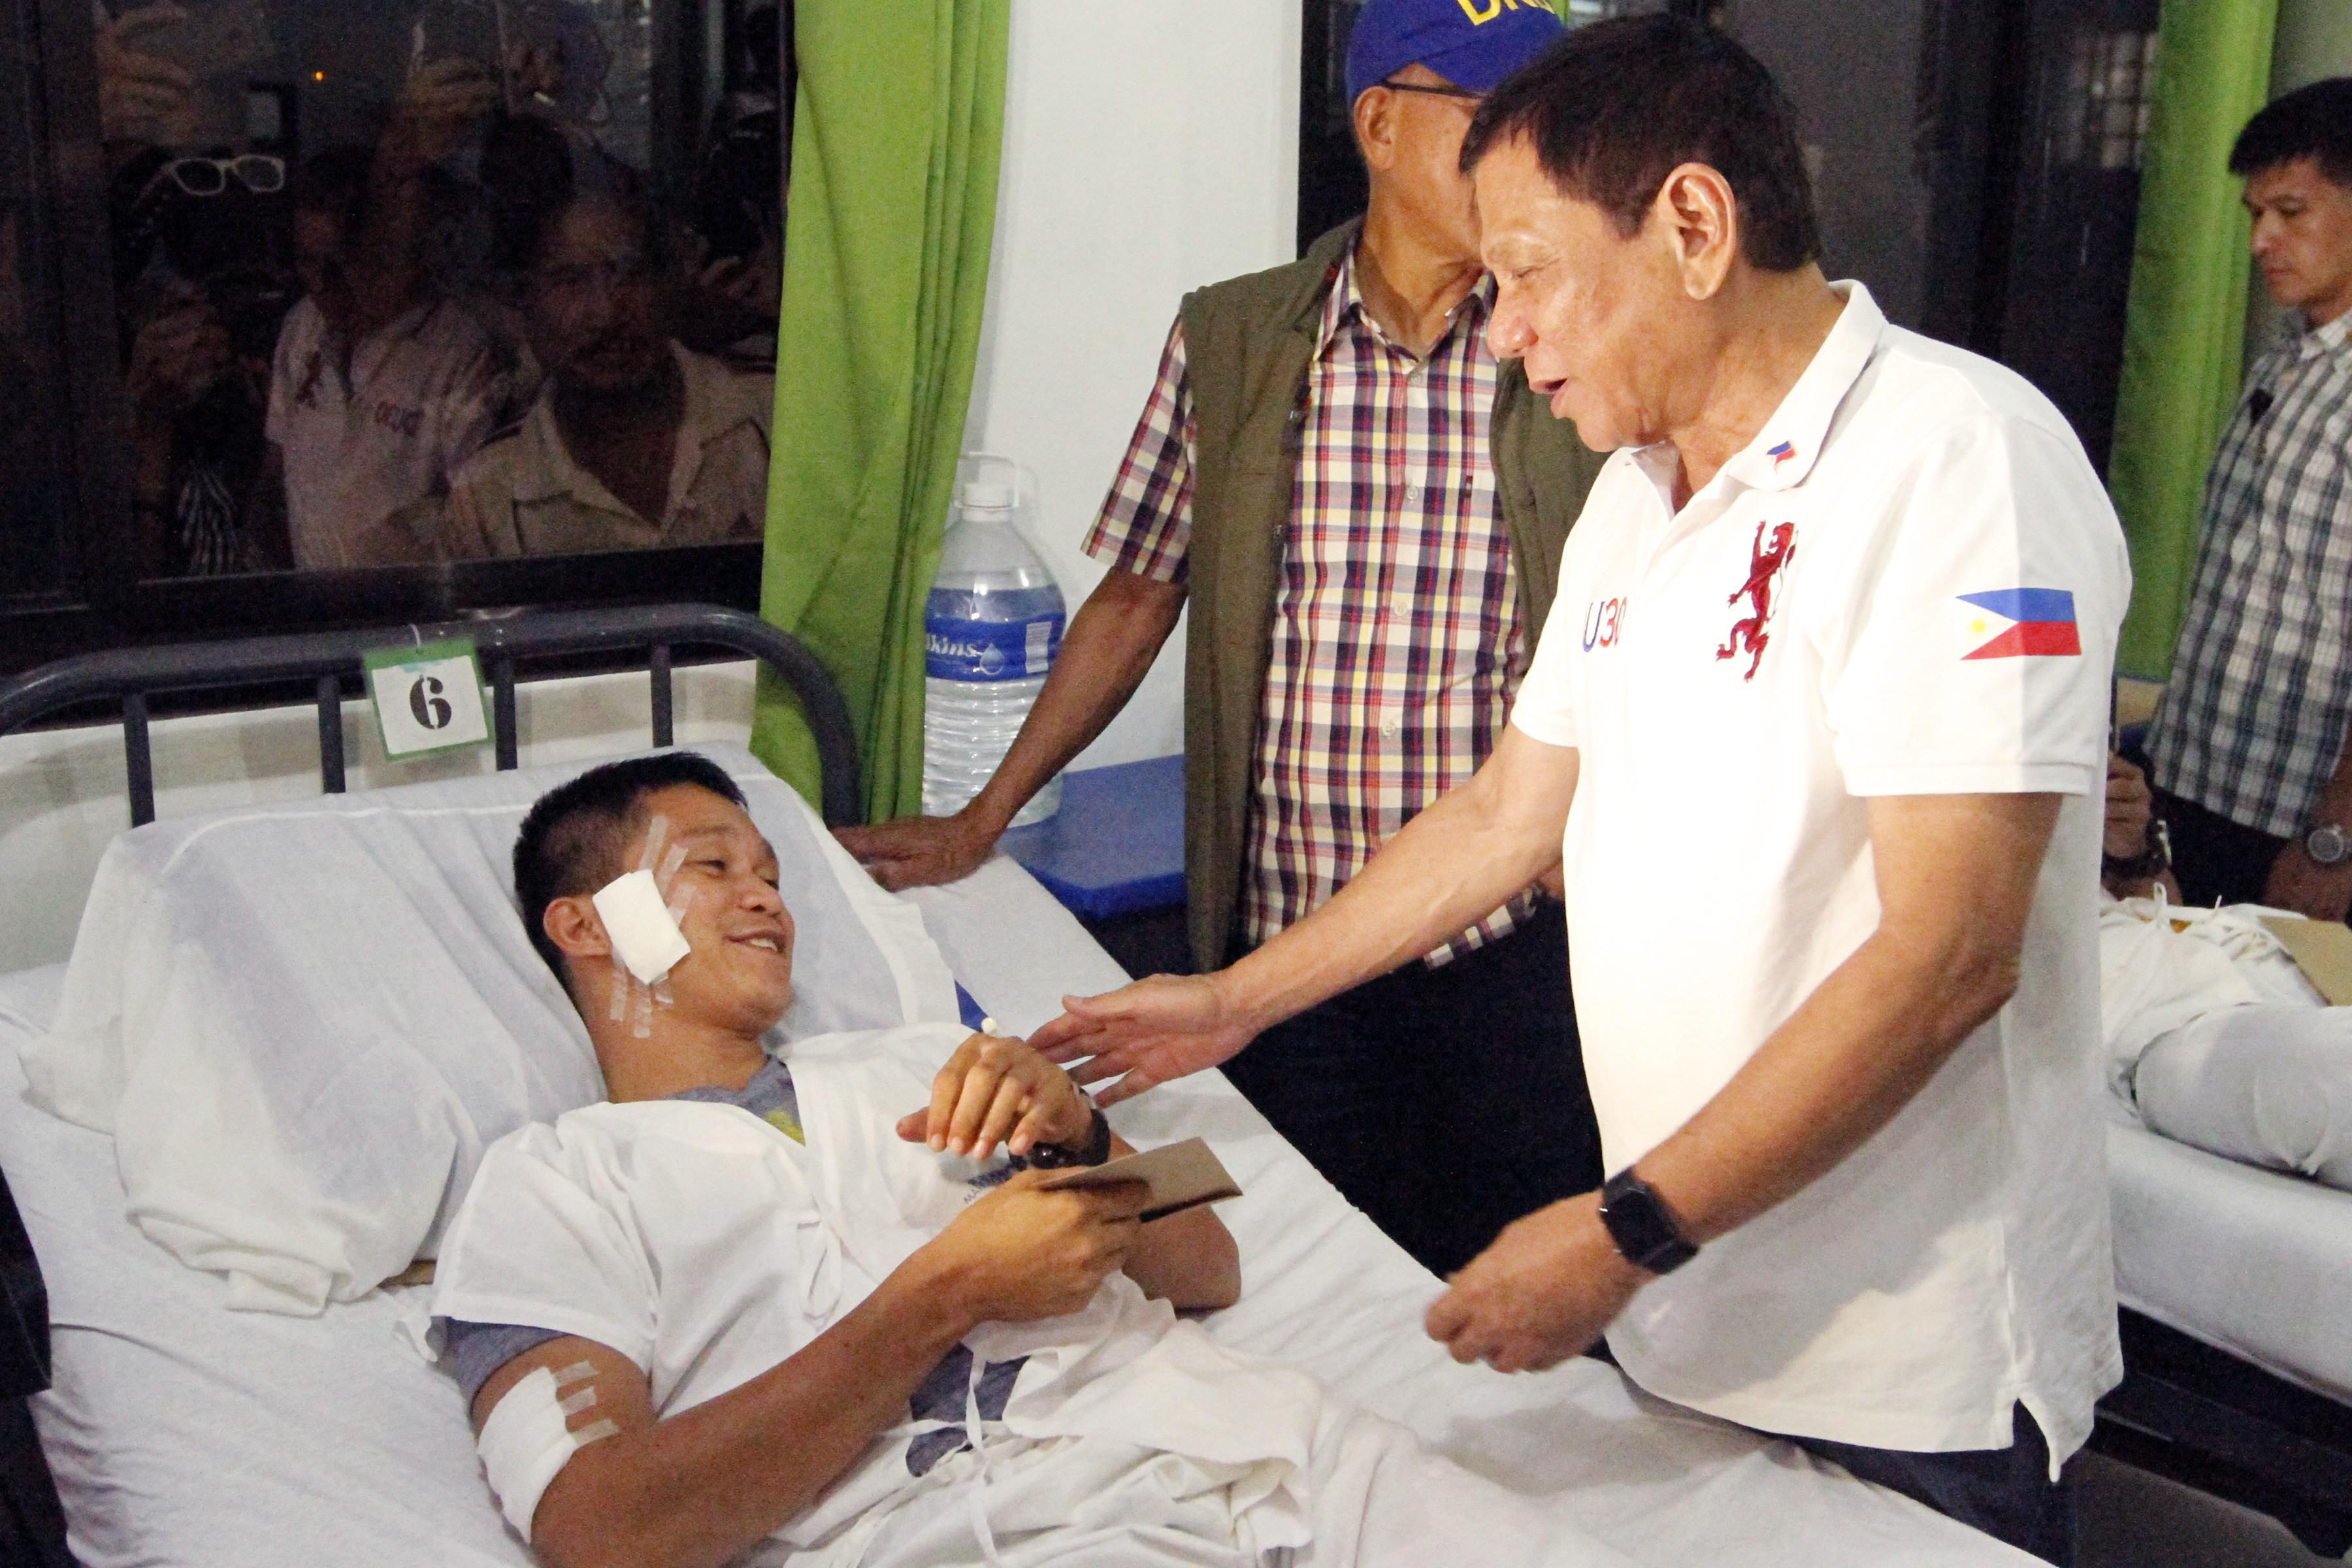 TRIBUTE TO THE WOUNDED. President Rodrigo Duterte visits a wounded soldier at Camp Navarro General Hospital in Zamboanga City on July 22, 2016. Photo by Benjamin Basug/NIB